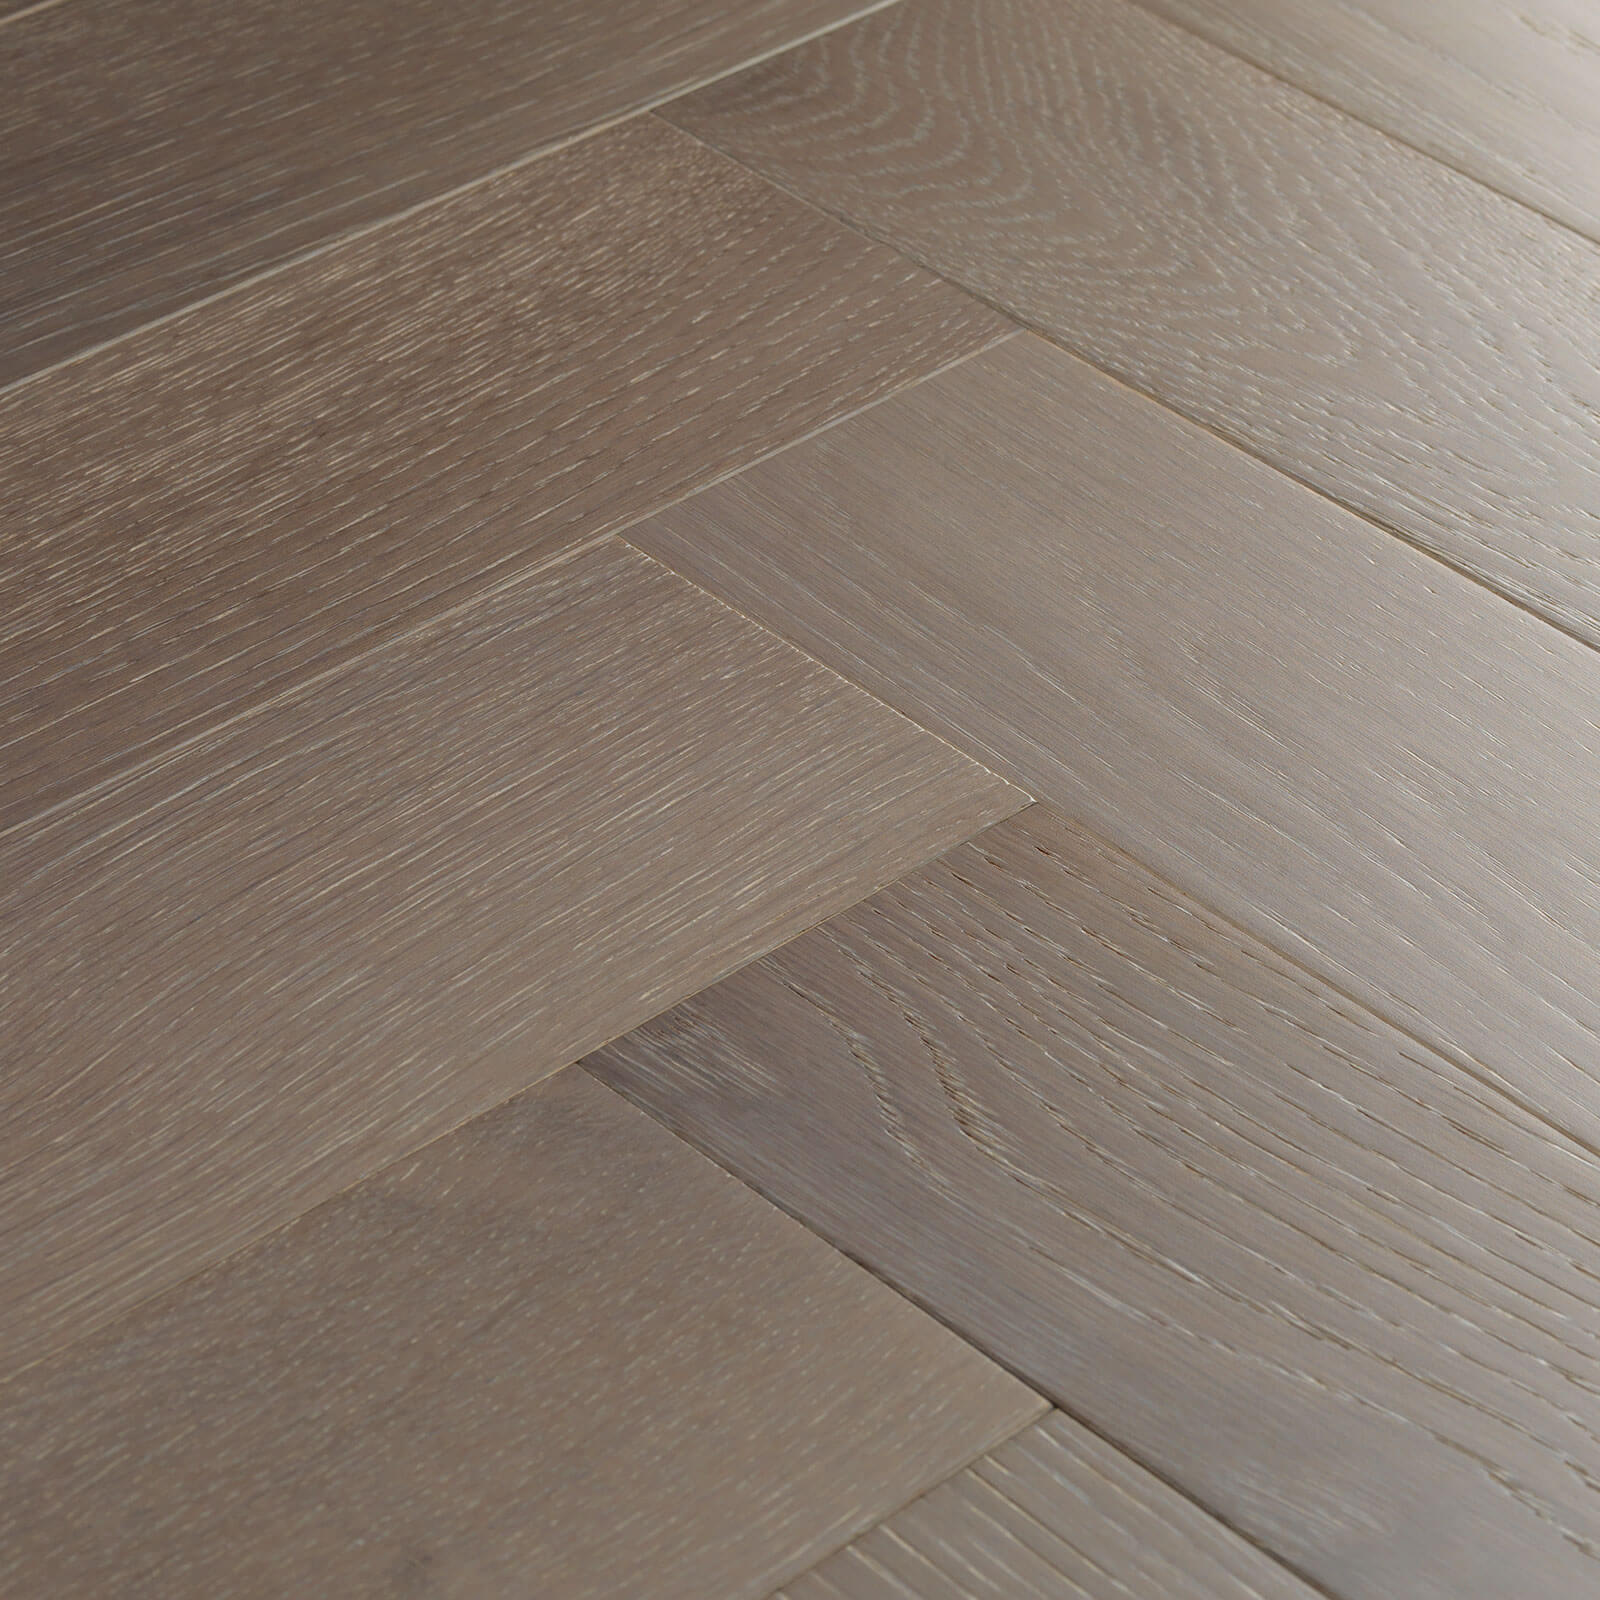 Woodpecker Goodrich Herringbone Feather Oak Brushed & Matt Lacquered Engineered Wood Flooring 32-OGW-001